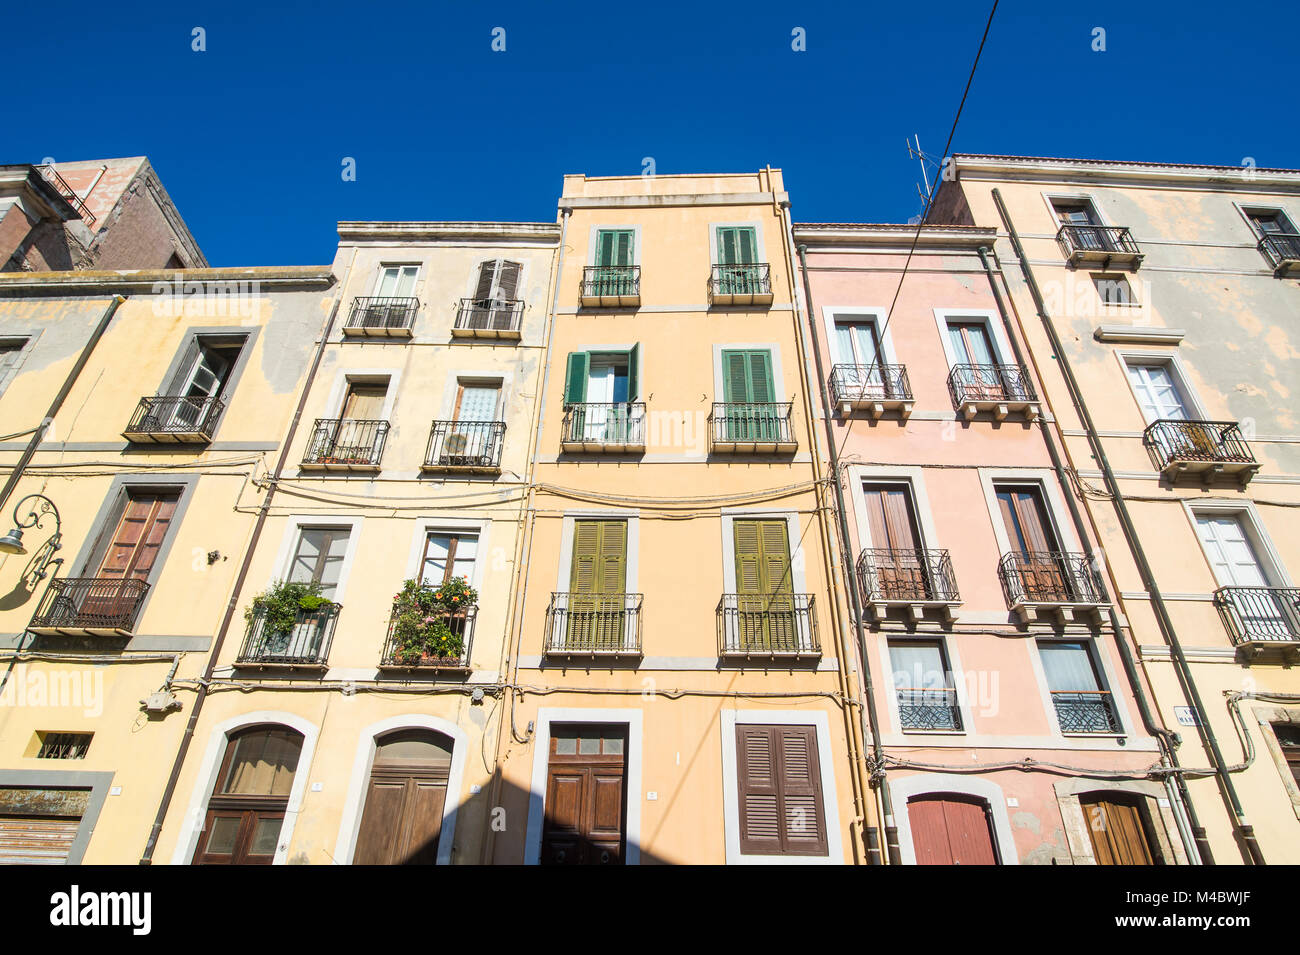 Old houses in the old town of Cagliari,Sardinia,Italy - Stock Image